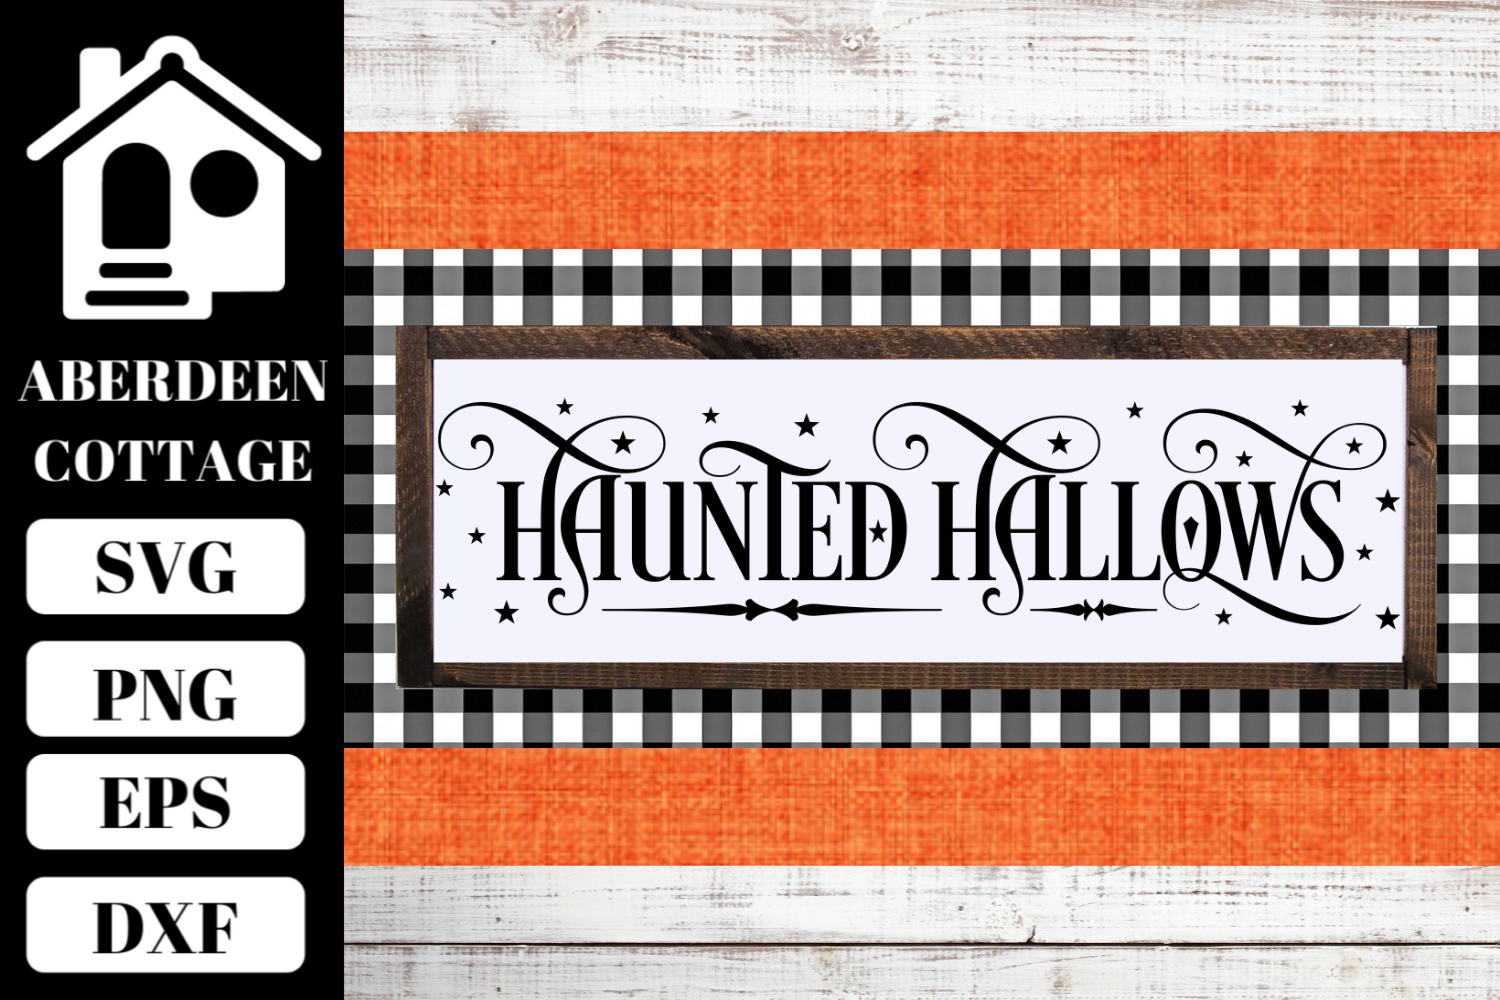 Haunted Hallows SVG example image 1